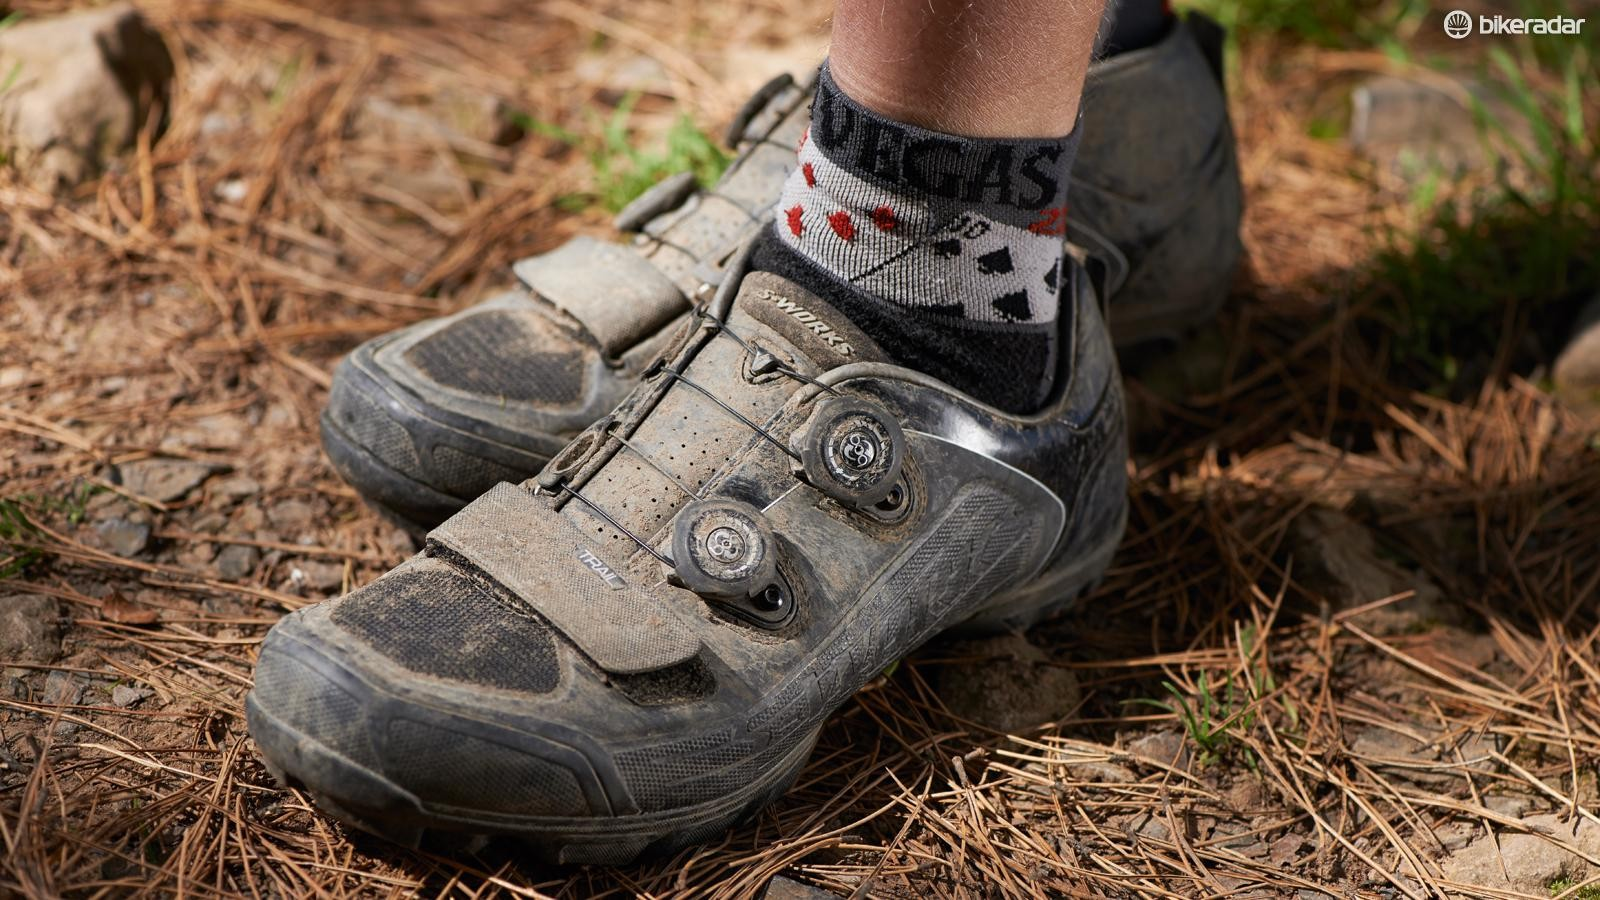 Specialized Trail S-Works shoes